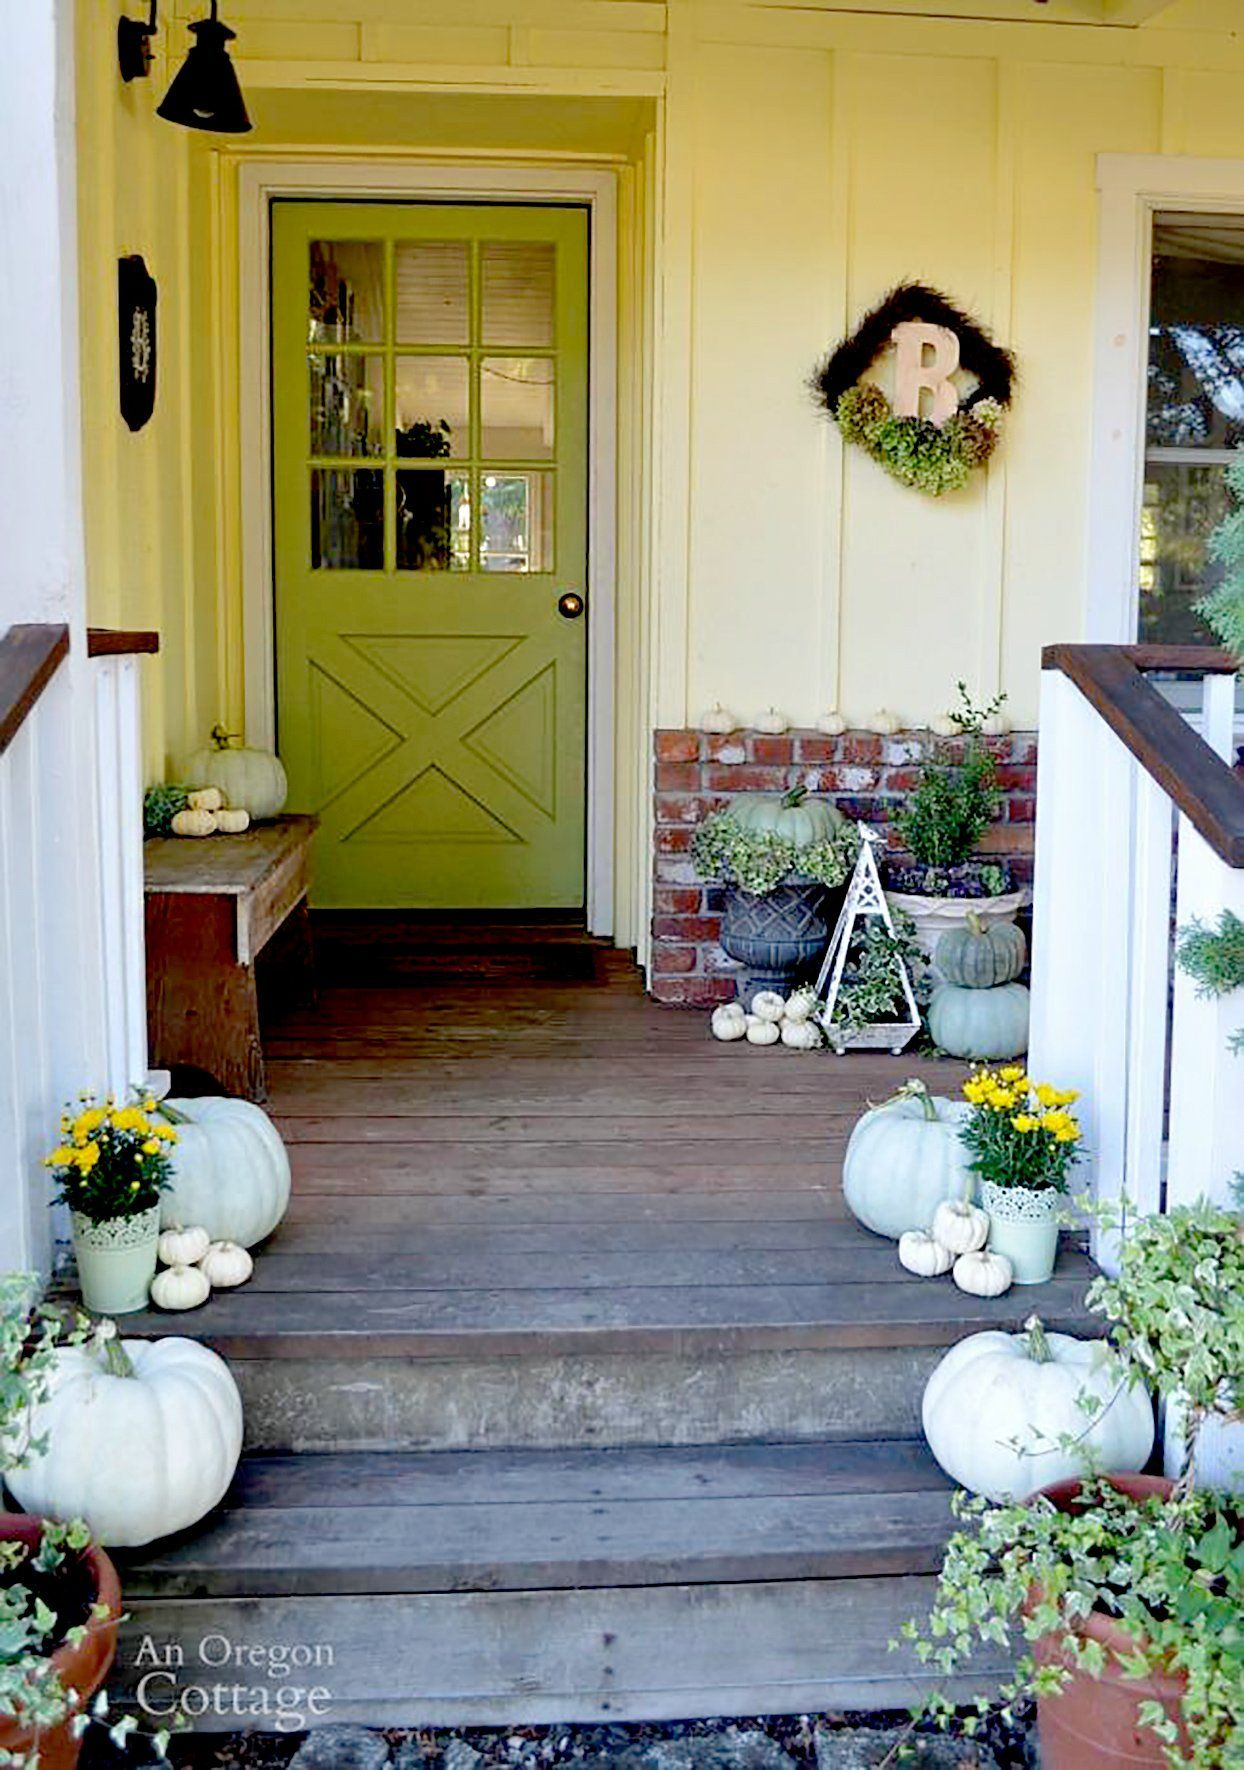 12 Inspirations For Home Improvement With Spanish Home Decorating Ideas: Fall Porch, Fall Front Porch, House With Porch